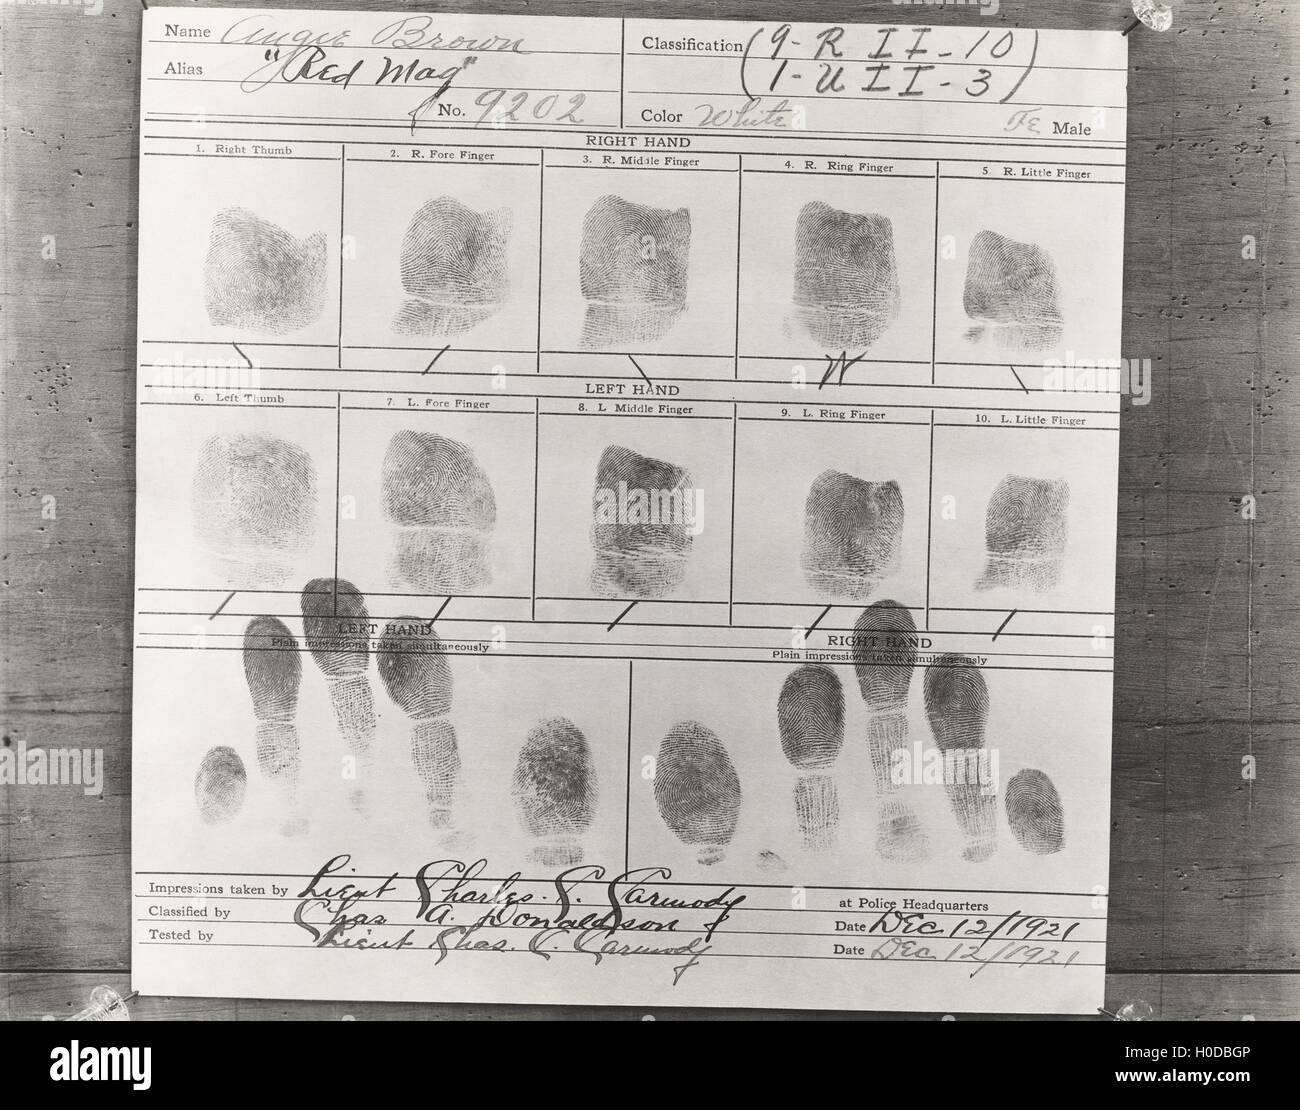 Close-up of person's fingerprints taken at police headquarters - Stock Image